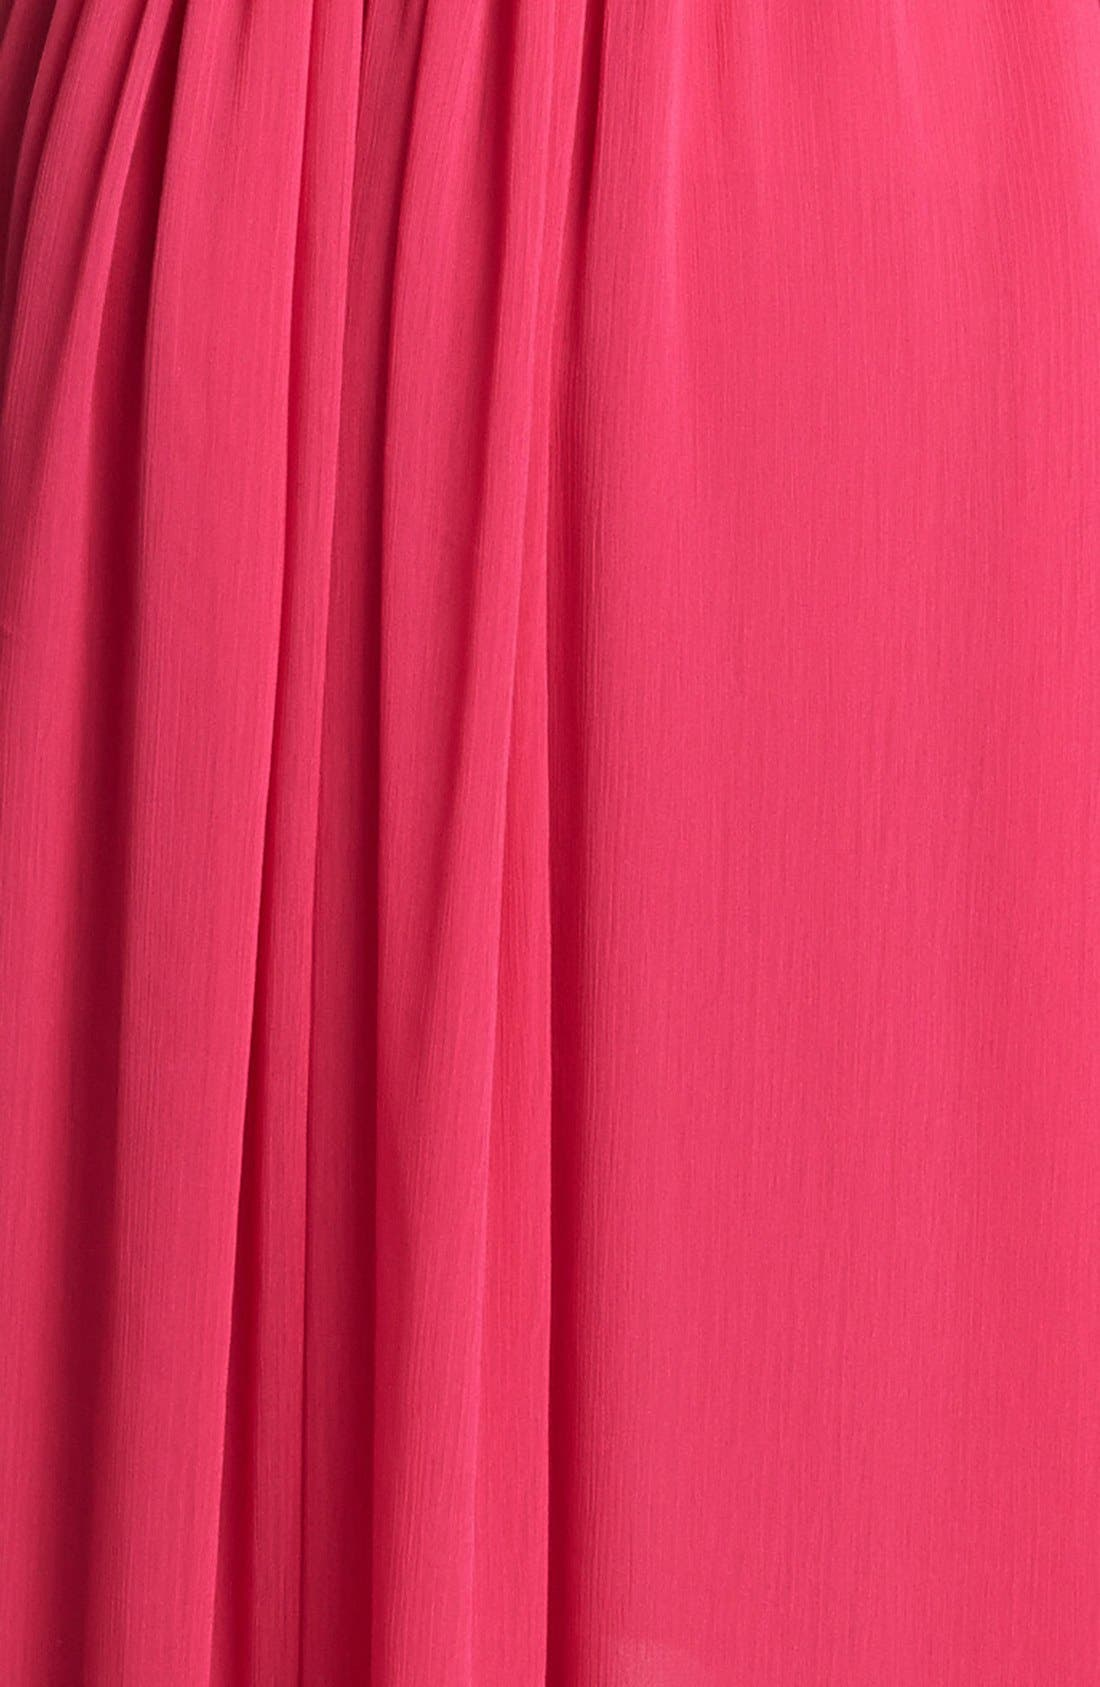 Alternate Image 3  - Adrianna Papell High/Low Crinkled Chiffon Dress